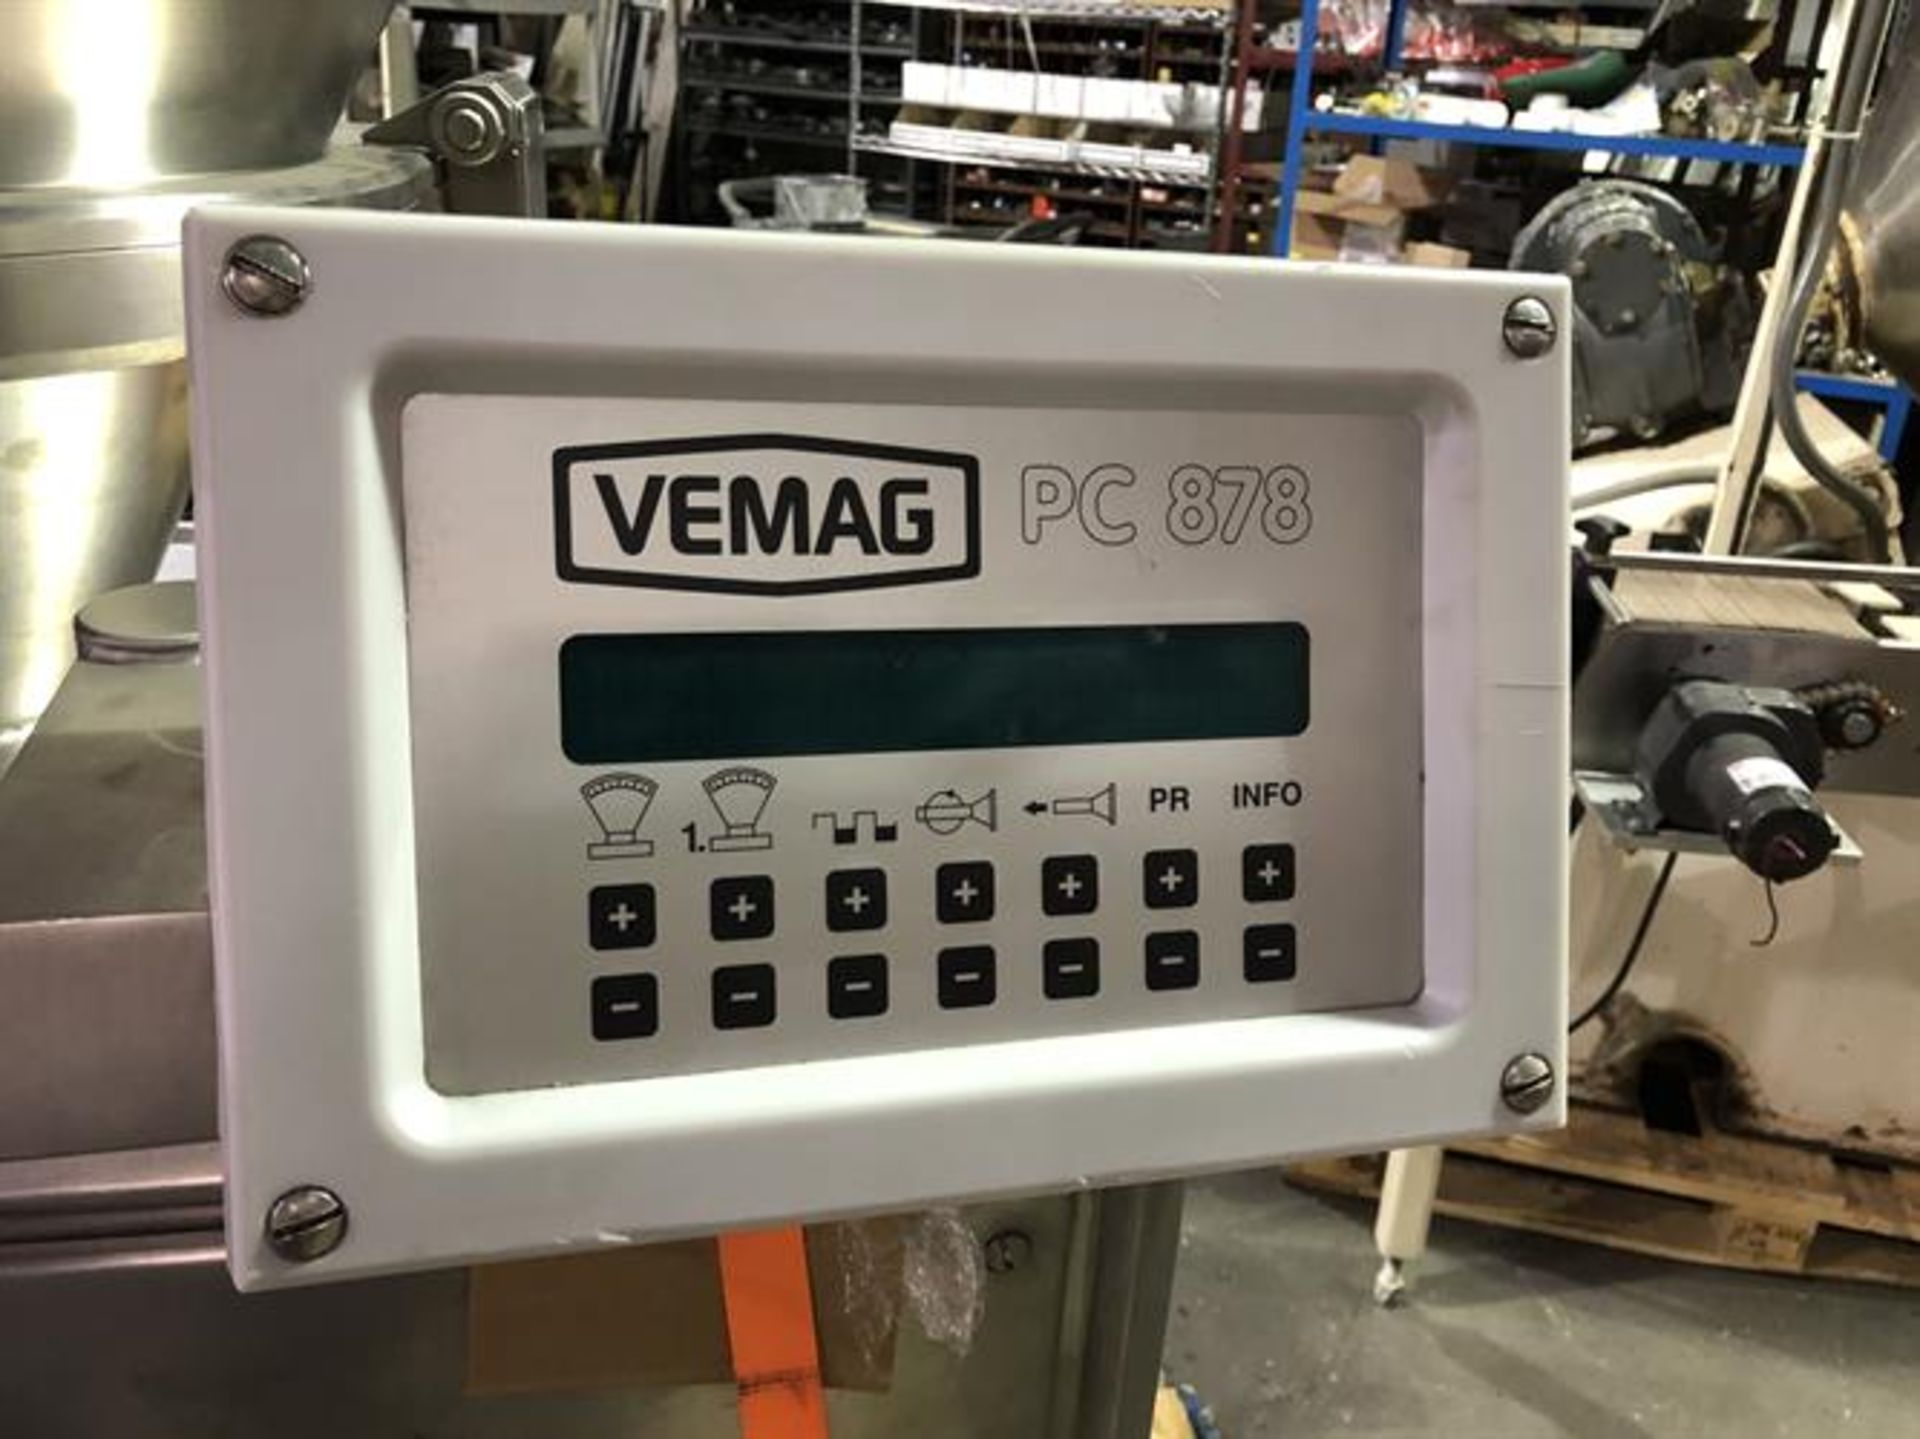 Vemag Robot 500 Stainless Steel Vacuum Stuffer - Machine has been completely reconditioned - PC - Image 18 of 31